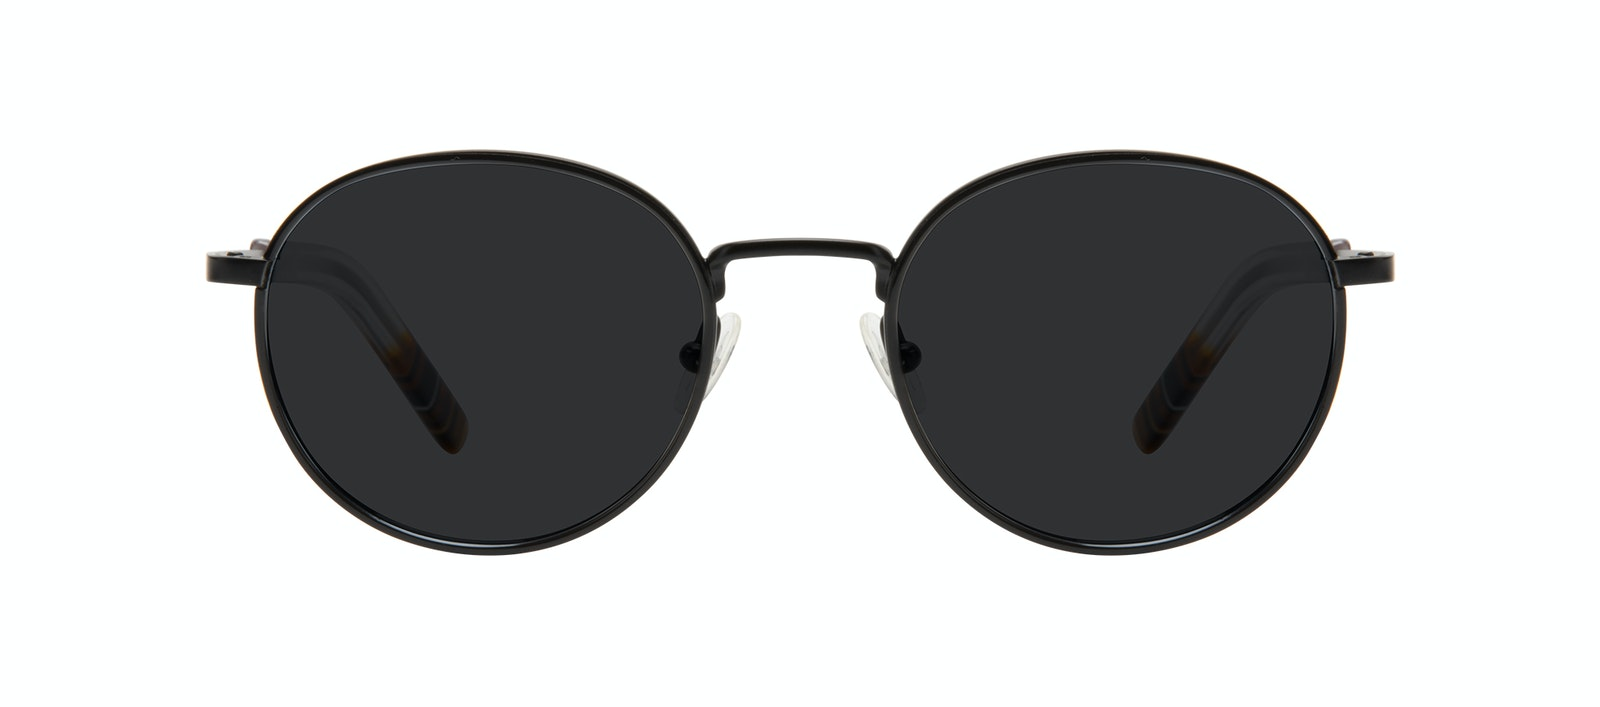 Affordable Fashion Glasses Round Sunglasses Men Reach Matte Black Front